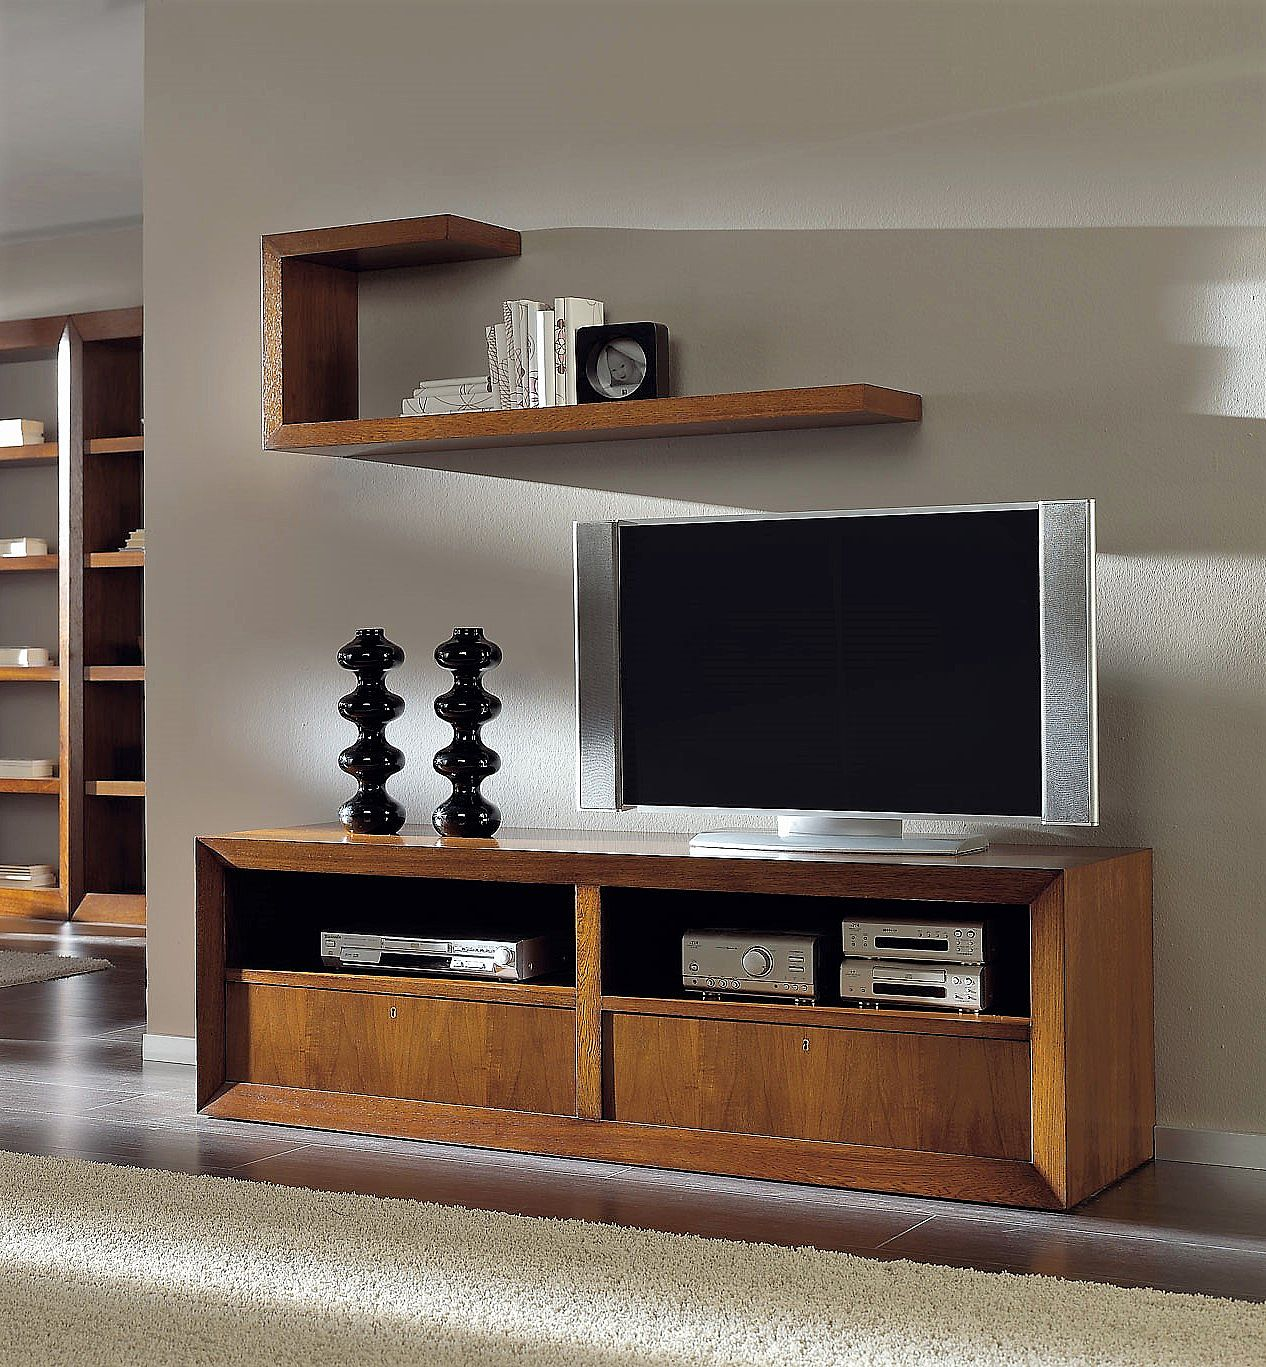 Tv Stand With Wheels And Drawers